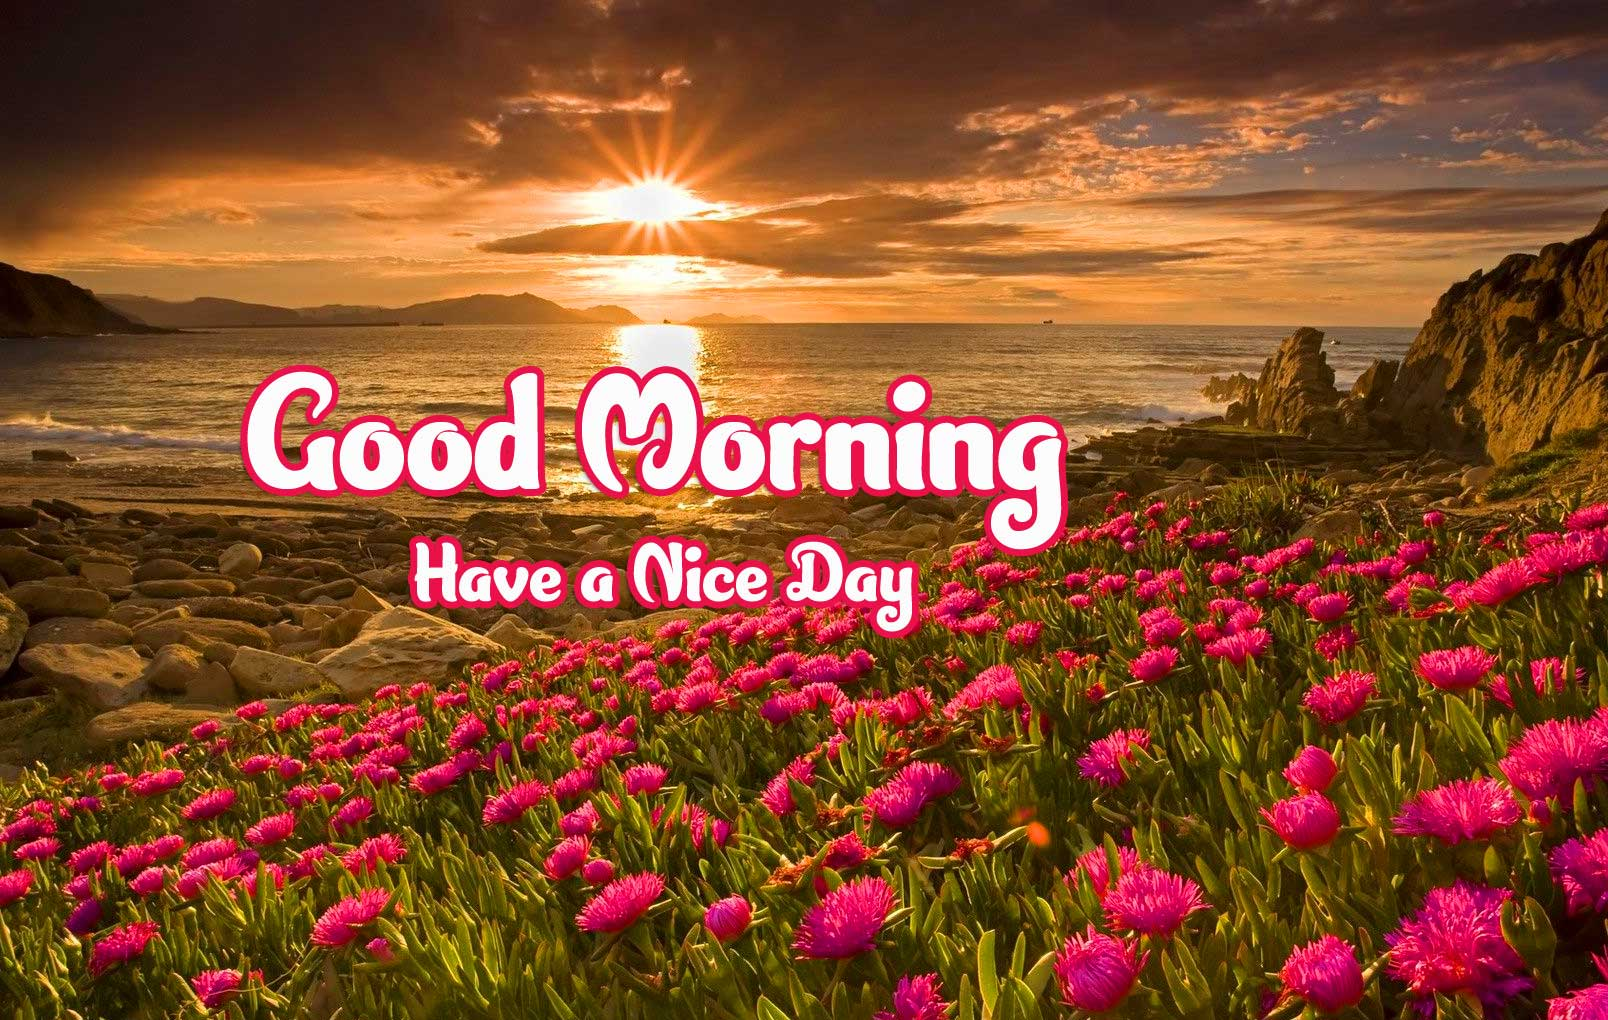 Beautiful Good Morning Wishes Images Pics HD Download